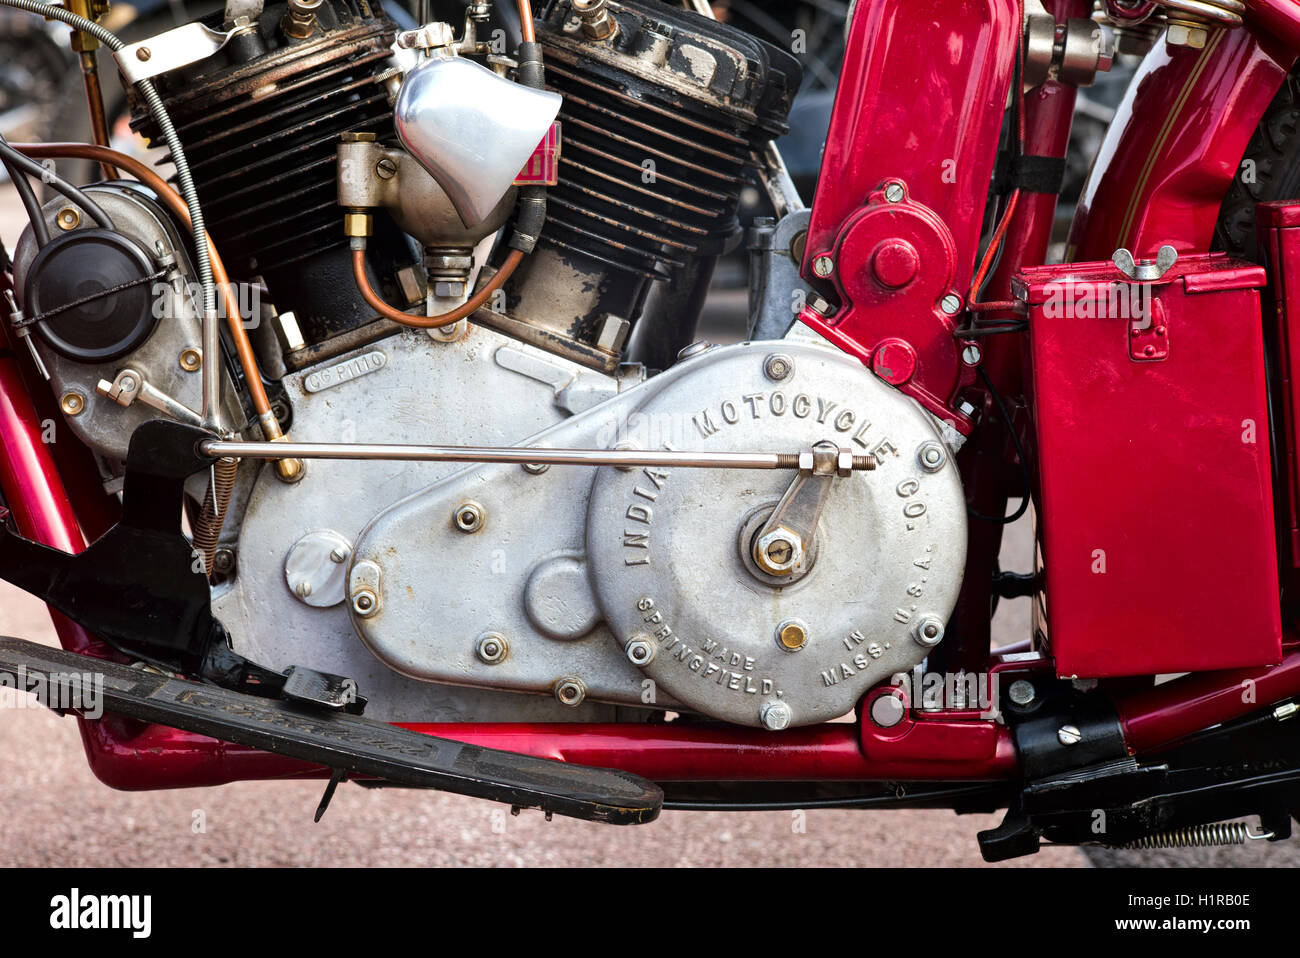 Engine Casing Stock Photos Images Alamy 1948 Indian Motorcycle Diagram 1924 550cc Scout Classic American At Vmcc Banbury Run Oxfordshire